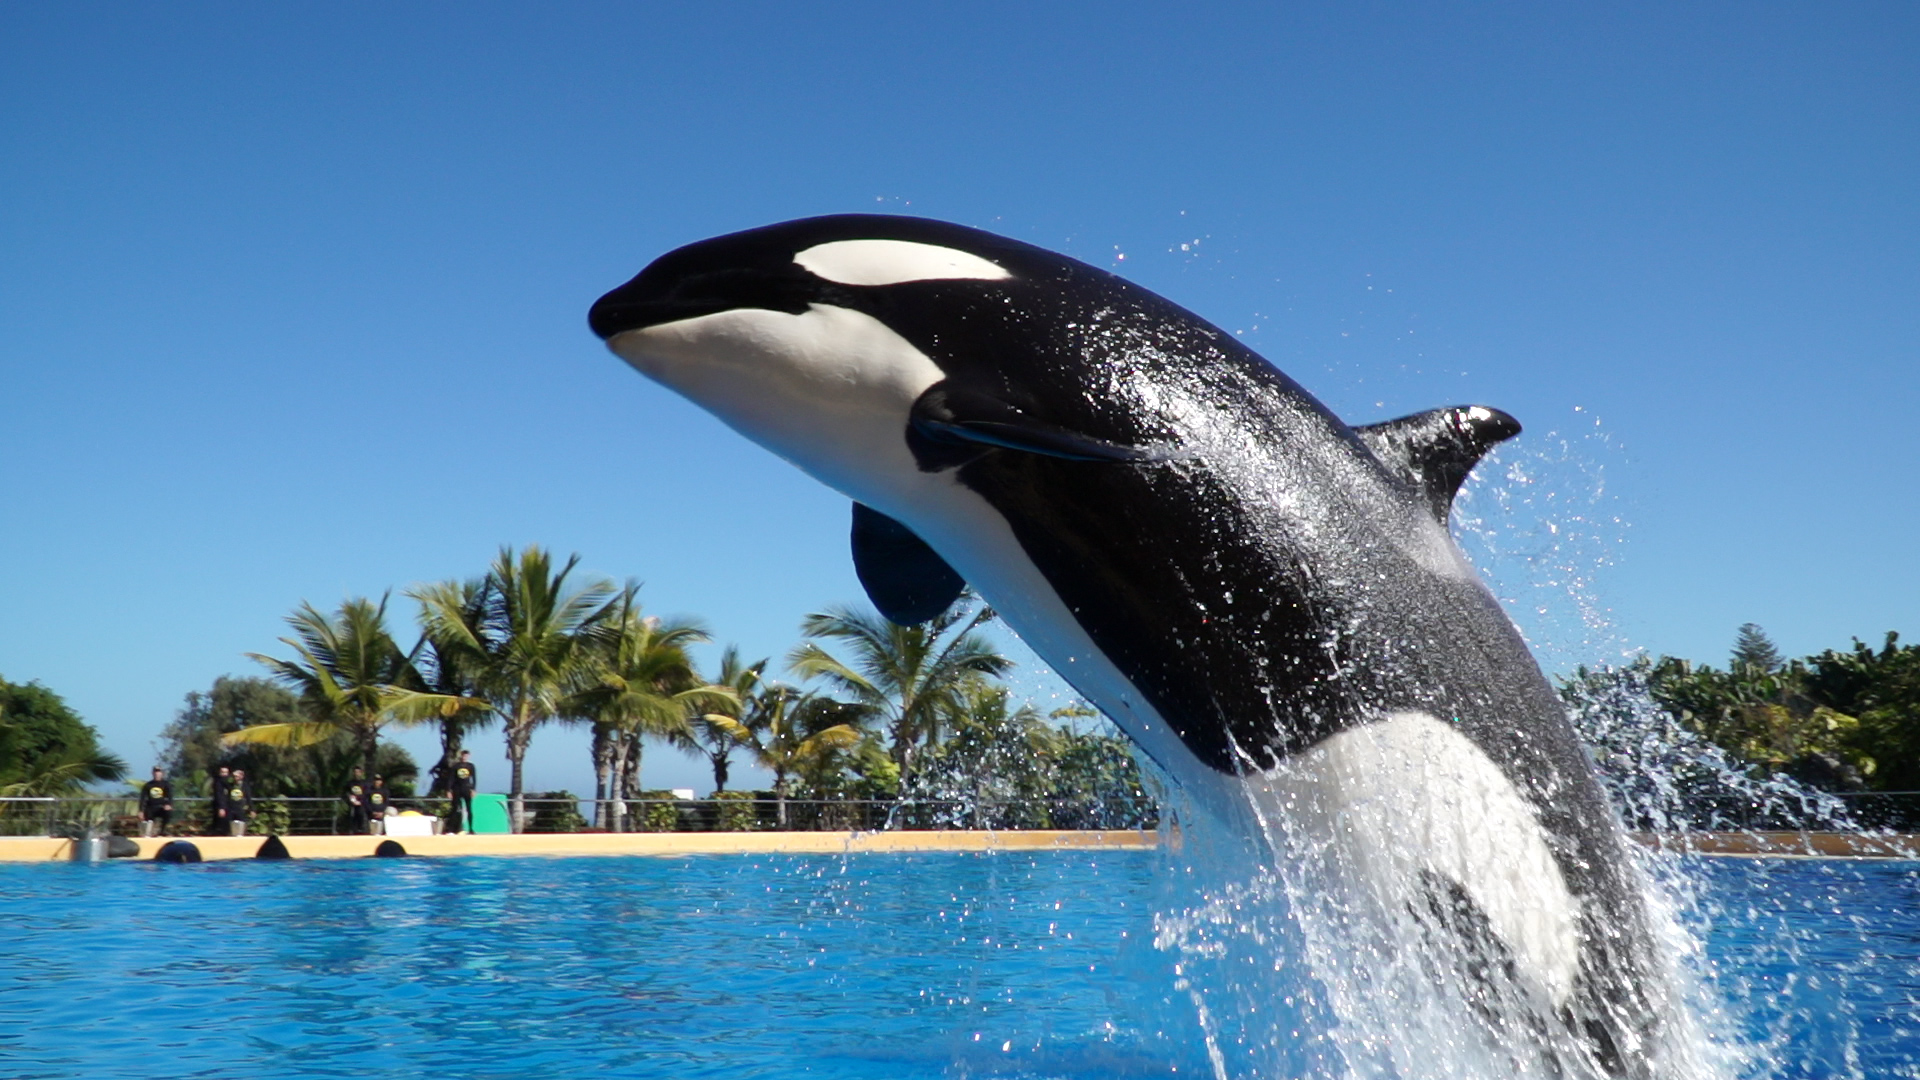 blog loro parque blog archive loro parque anticipates that the